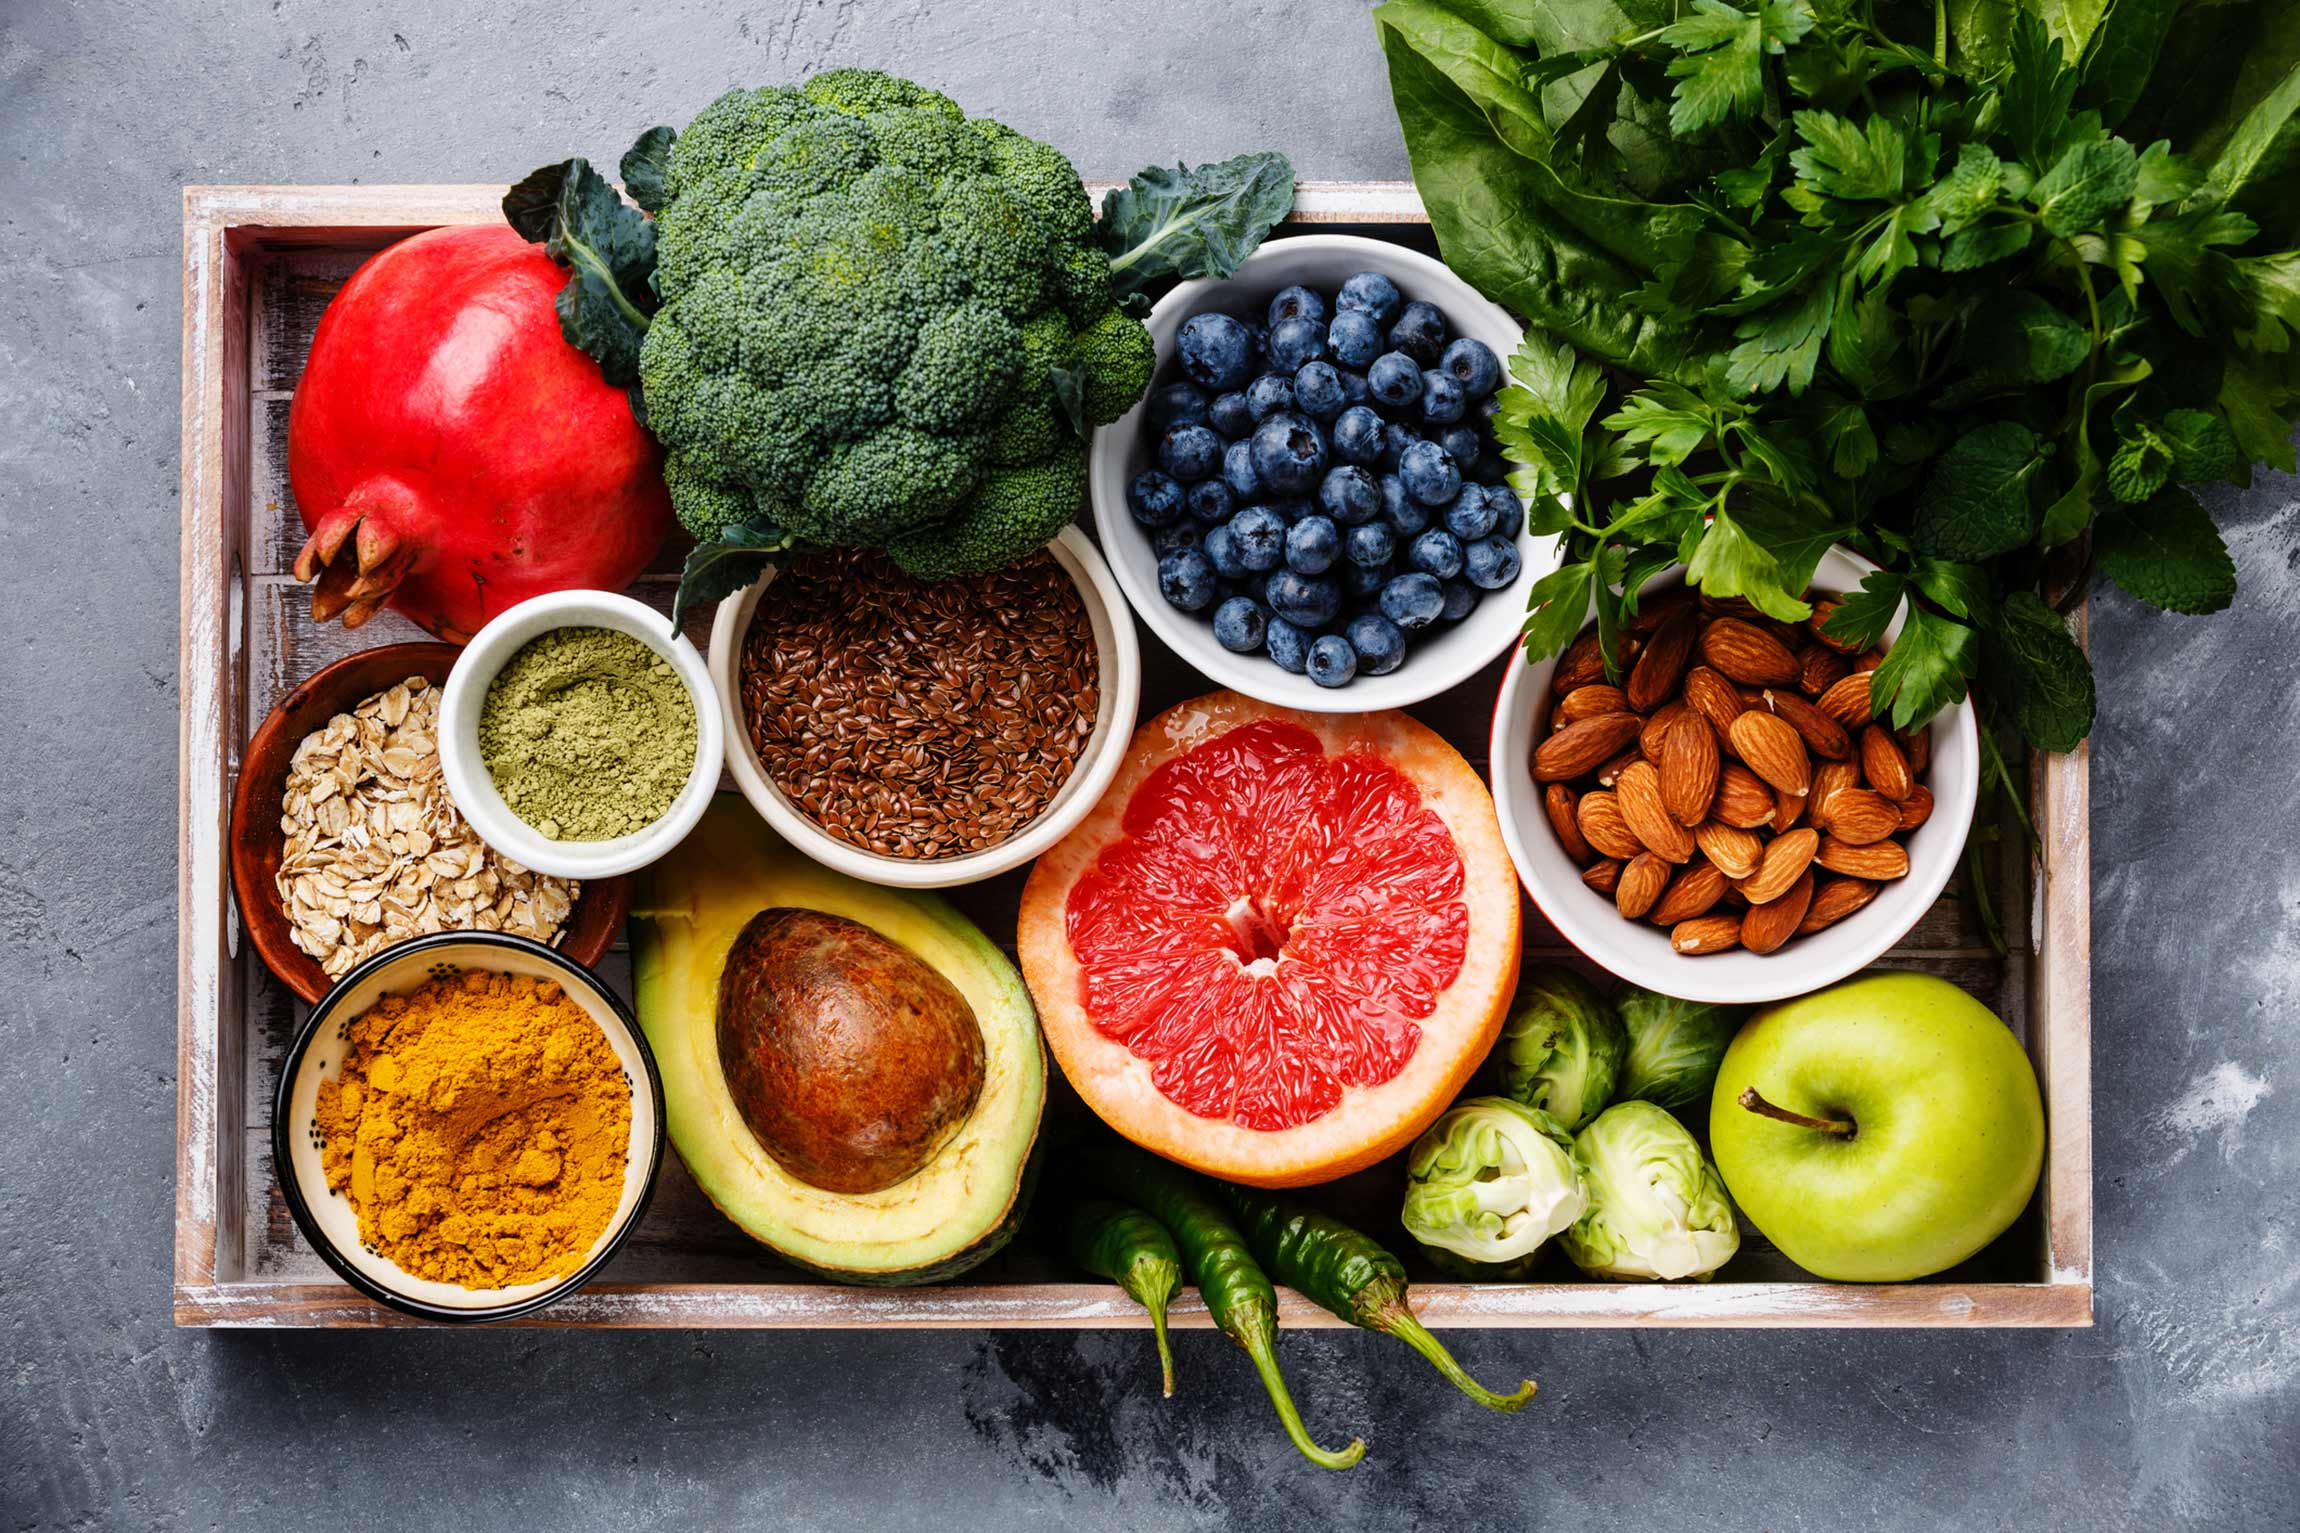 A tray full of fruits, vegetables, nuts, grains, and spices